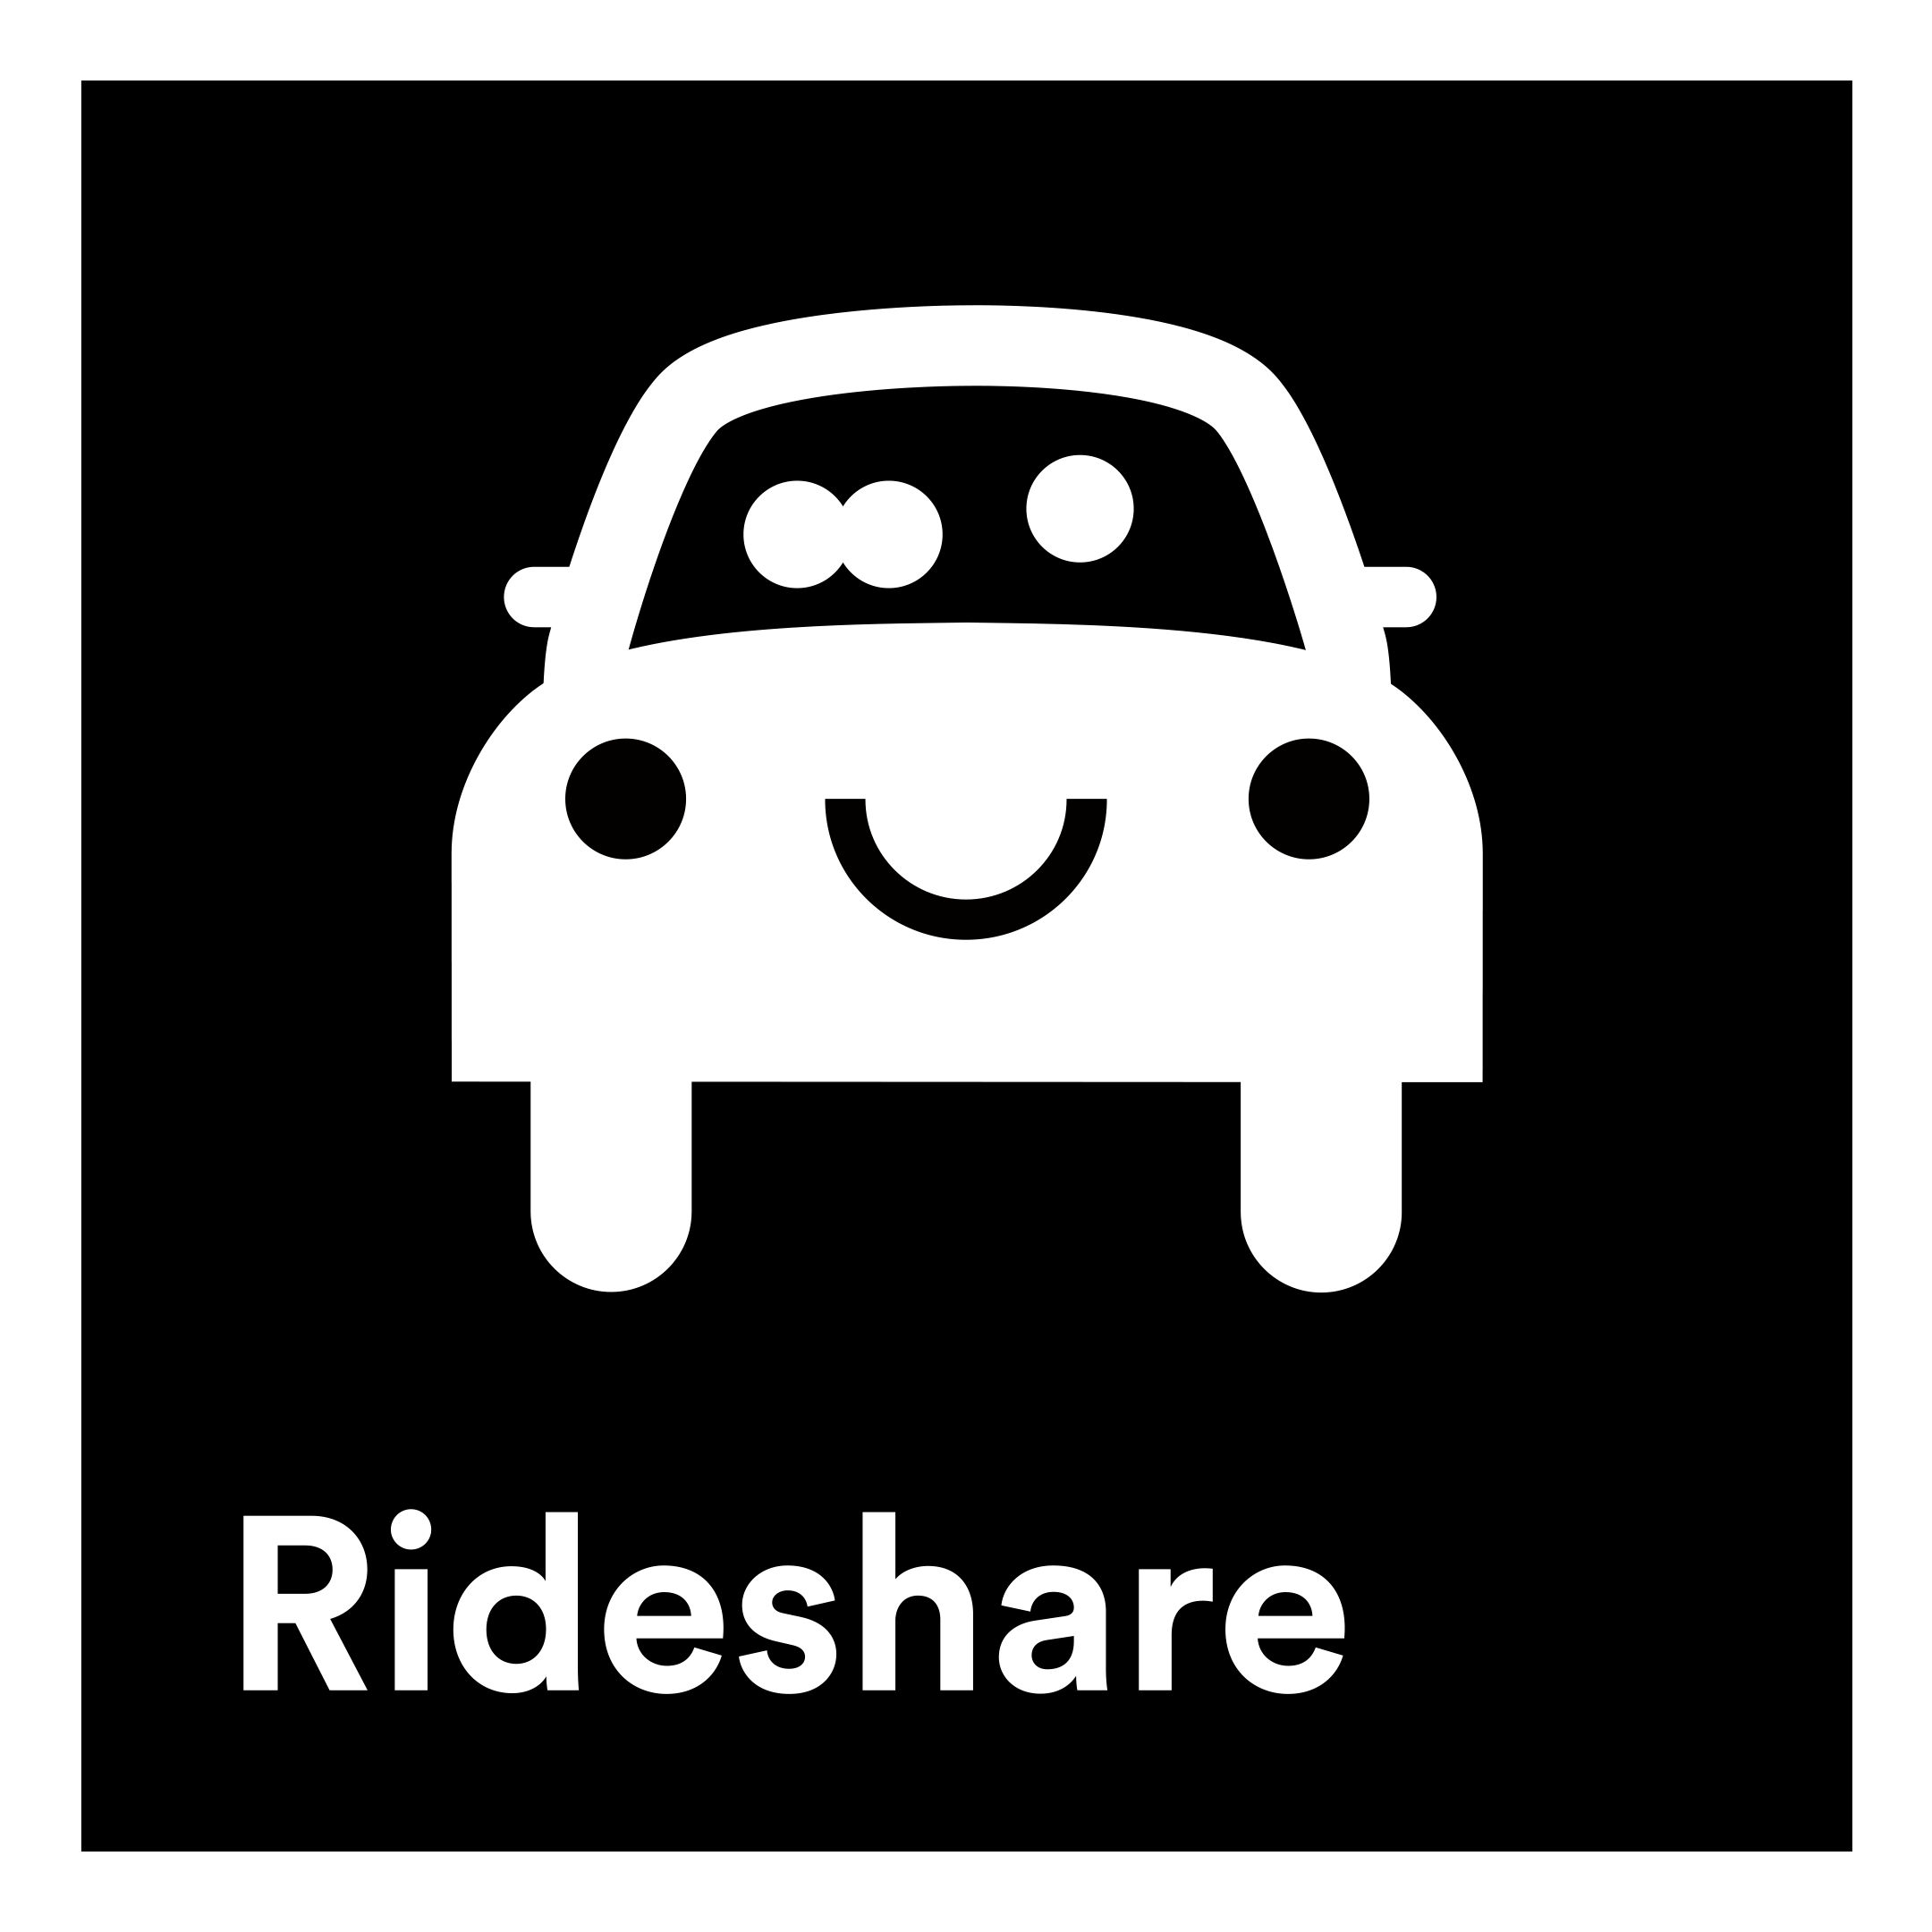 LYFT - Share ride drop off and pick up locations. Between 54th and 55th Lake Park20% off up to $5 on two ridesLYFT Code: SILVERROOM2019